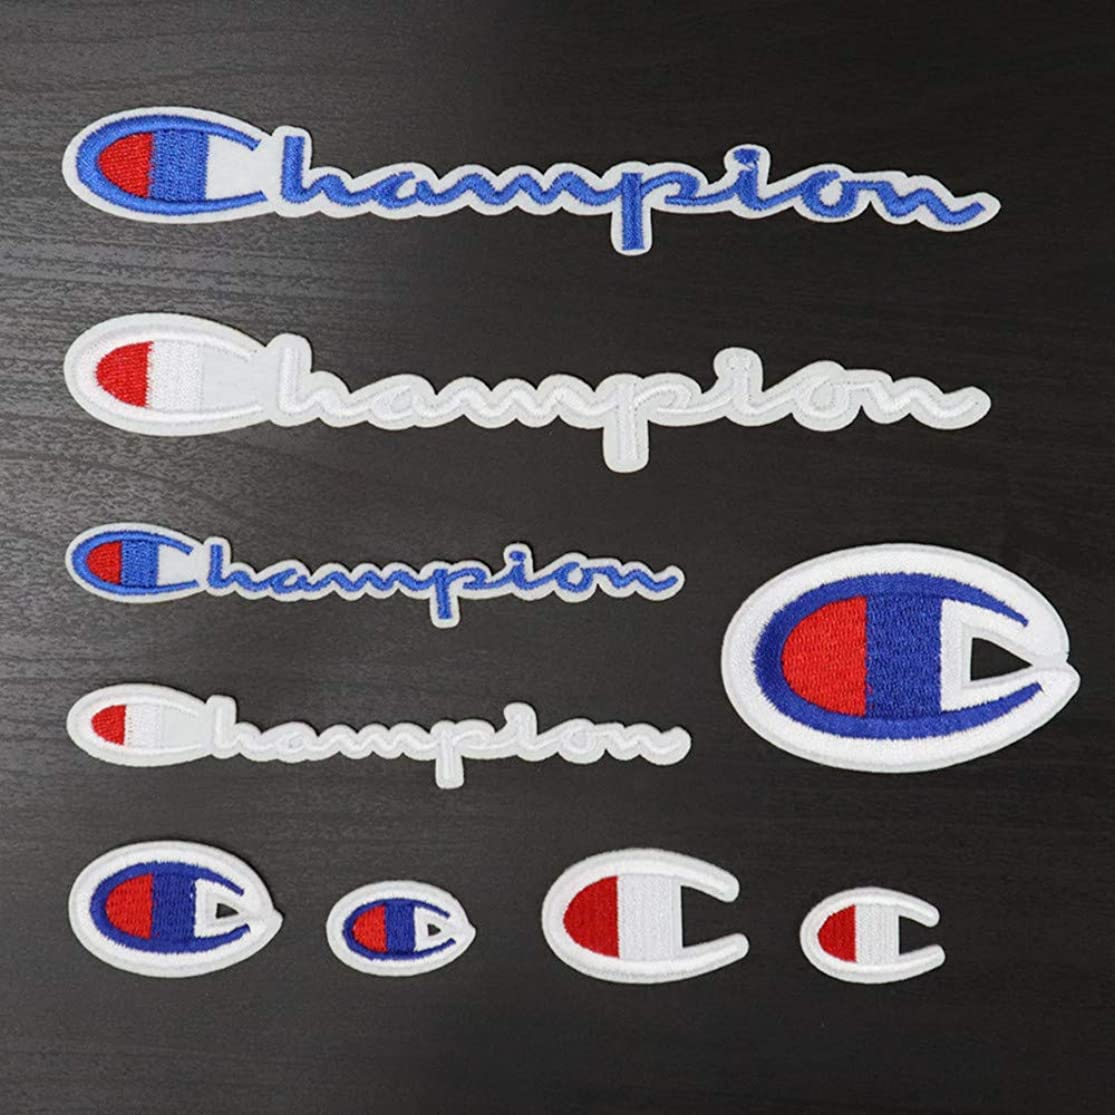 9 Pack Champion Patches Set Sew on or Iron on Multi Size Patch Embroidered DIY Applique Badge Decorative (Champion Patches) ftivyjqx4